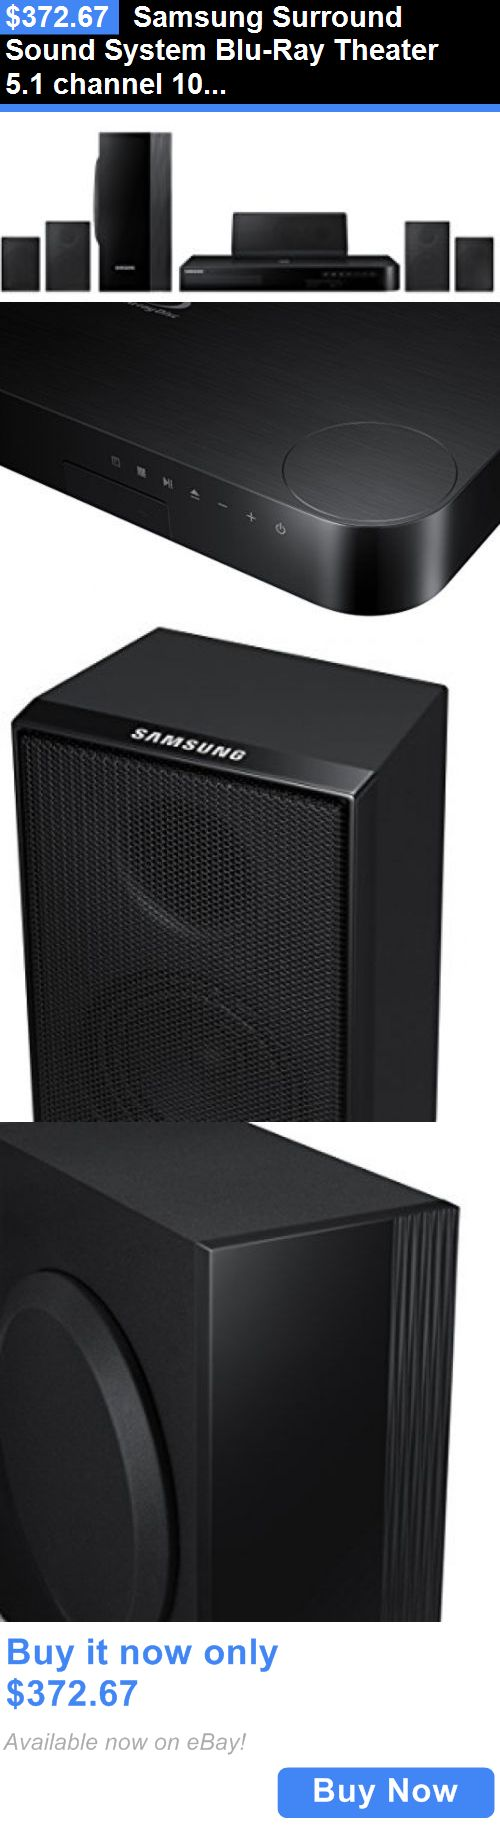 Home Theater Systems: Samsung Surround Sound System Blu-Ray Theater 5.1 Channel 1000 Wt 5 Speaker Sub BUY IT NOW ONLY: $372.67